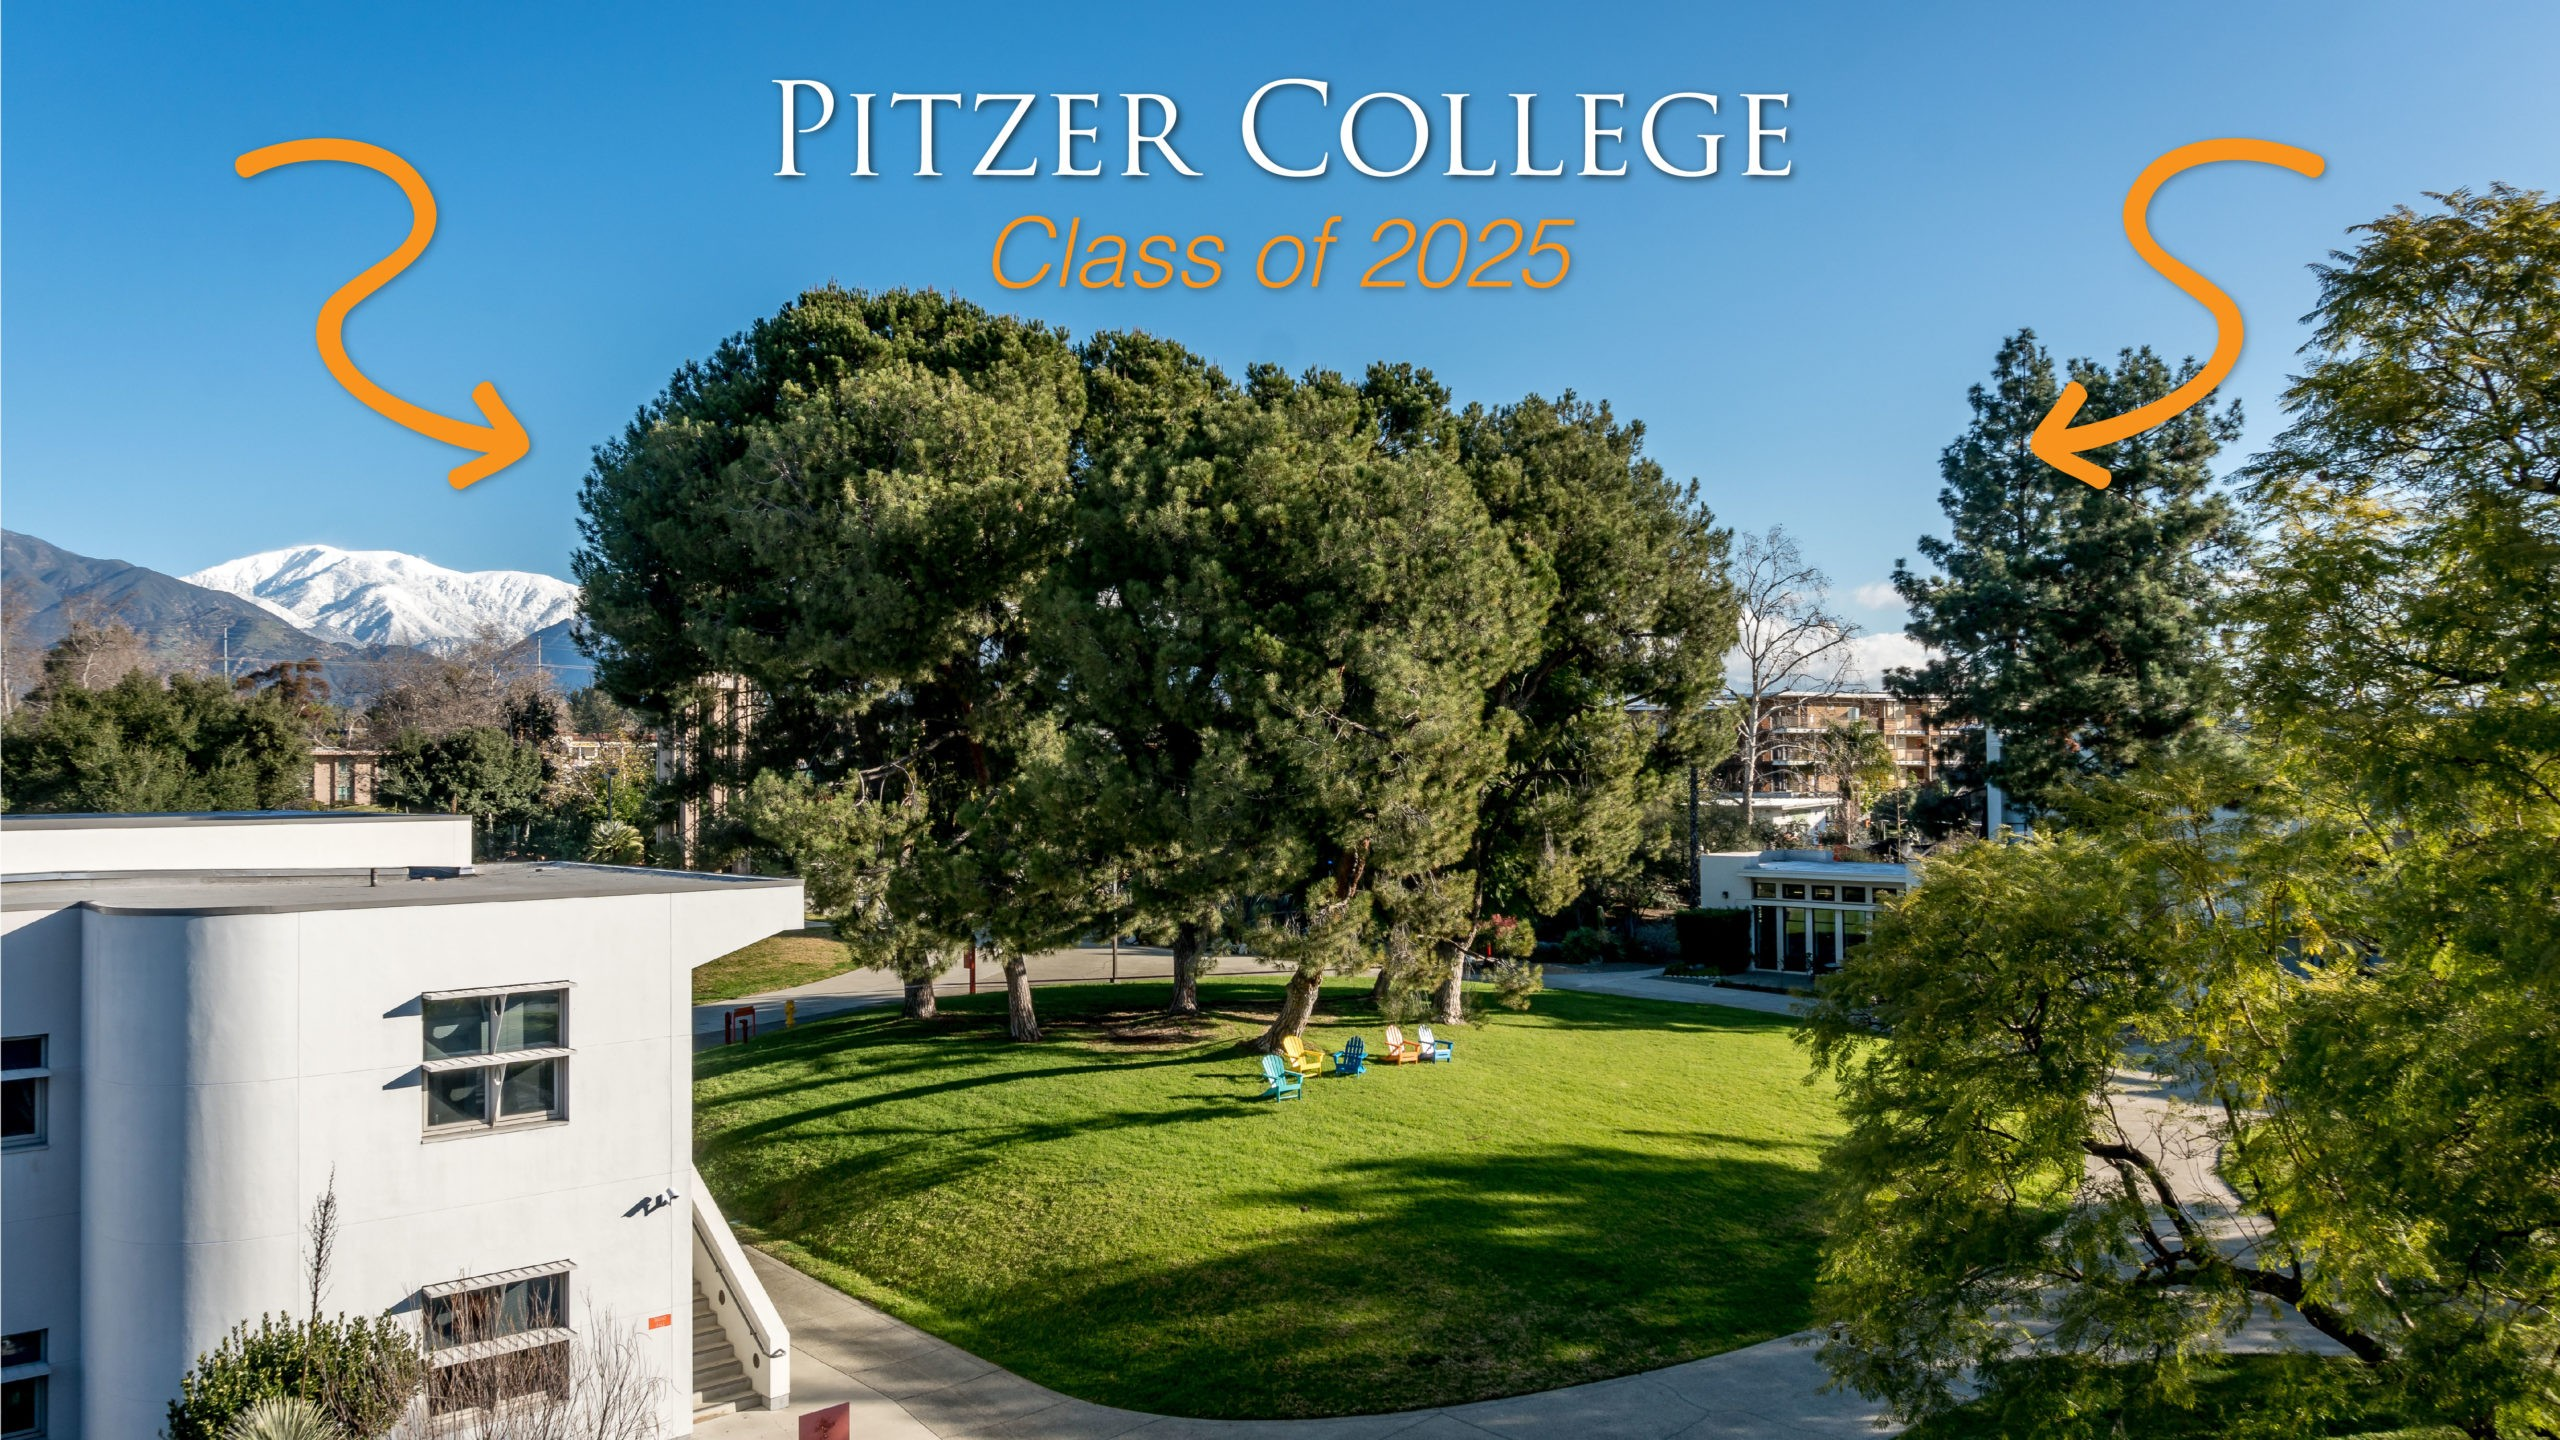 Pitzer College Class of 2025